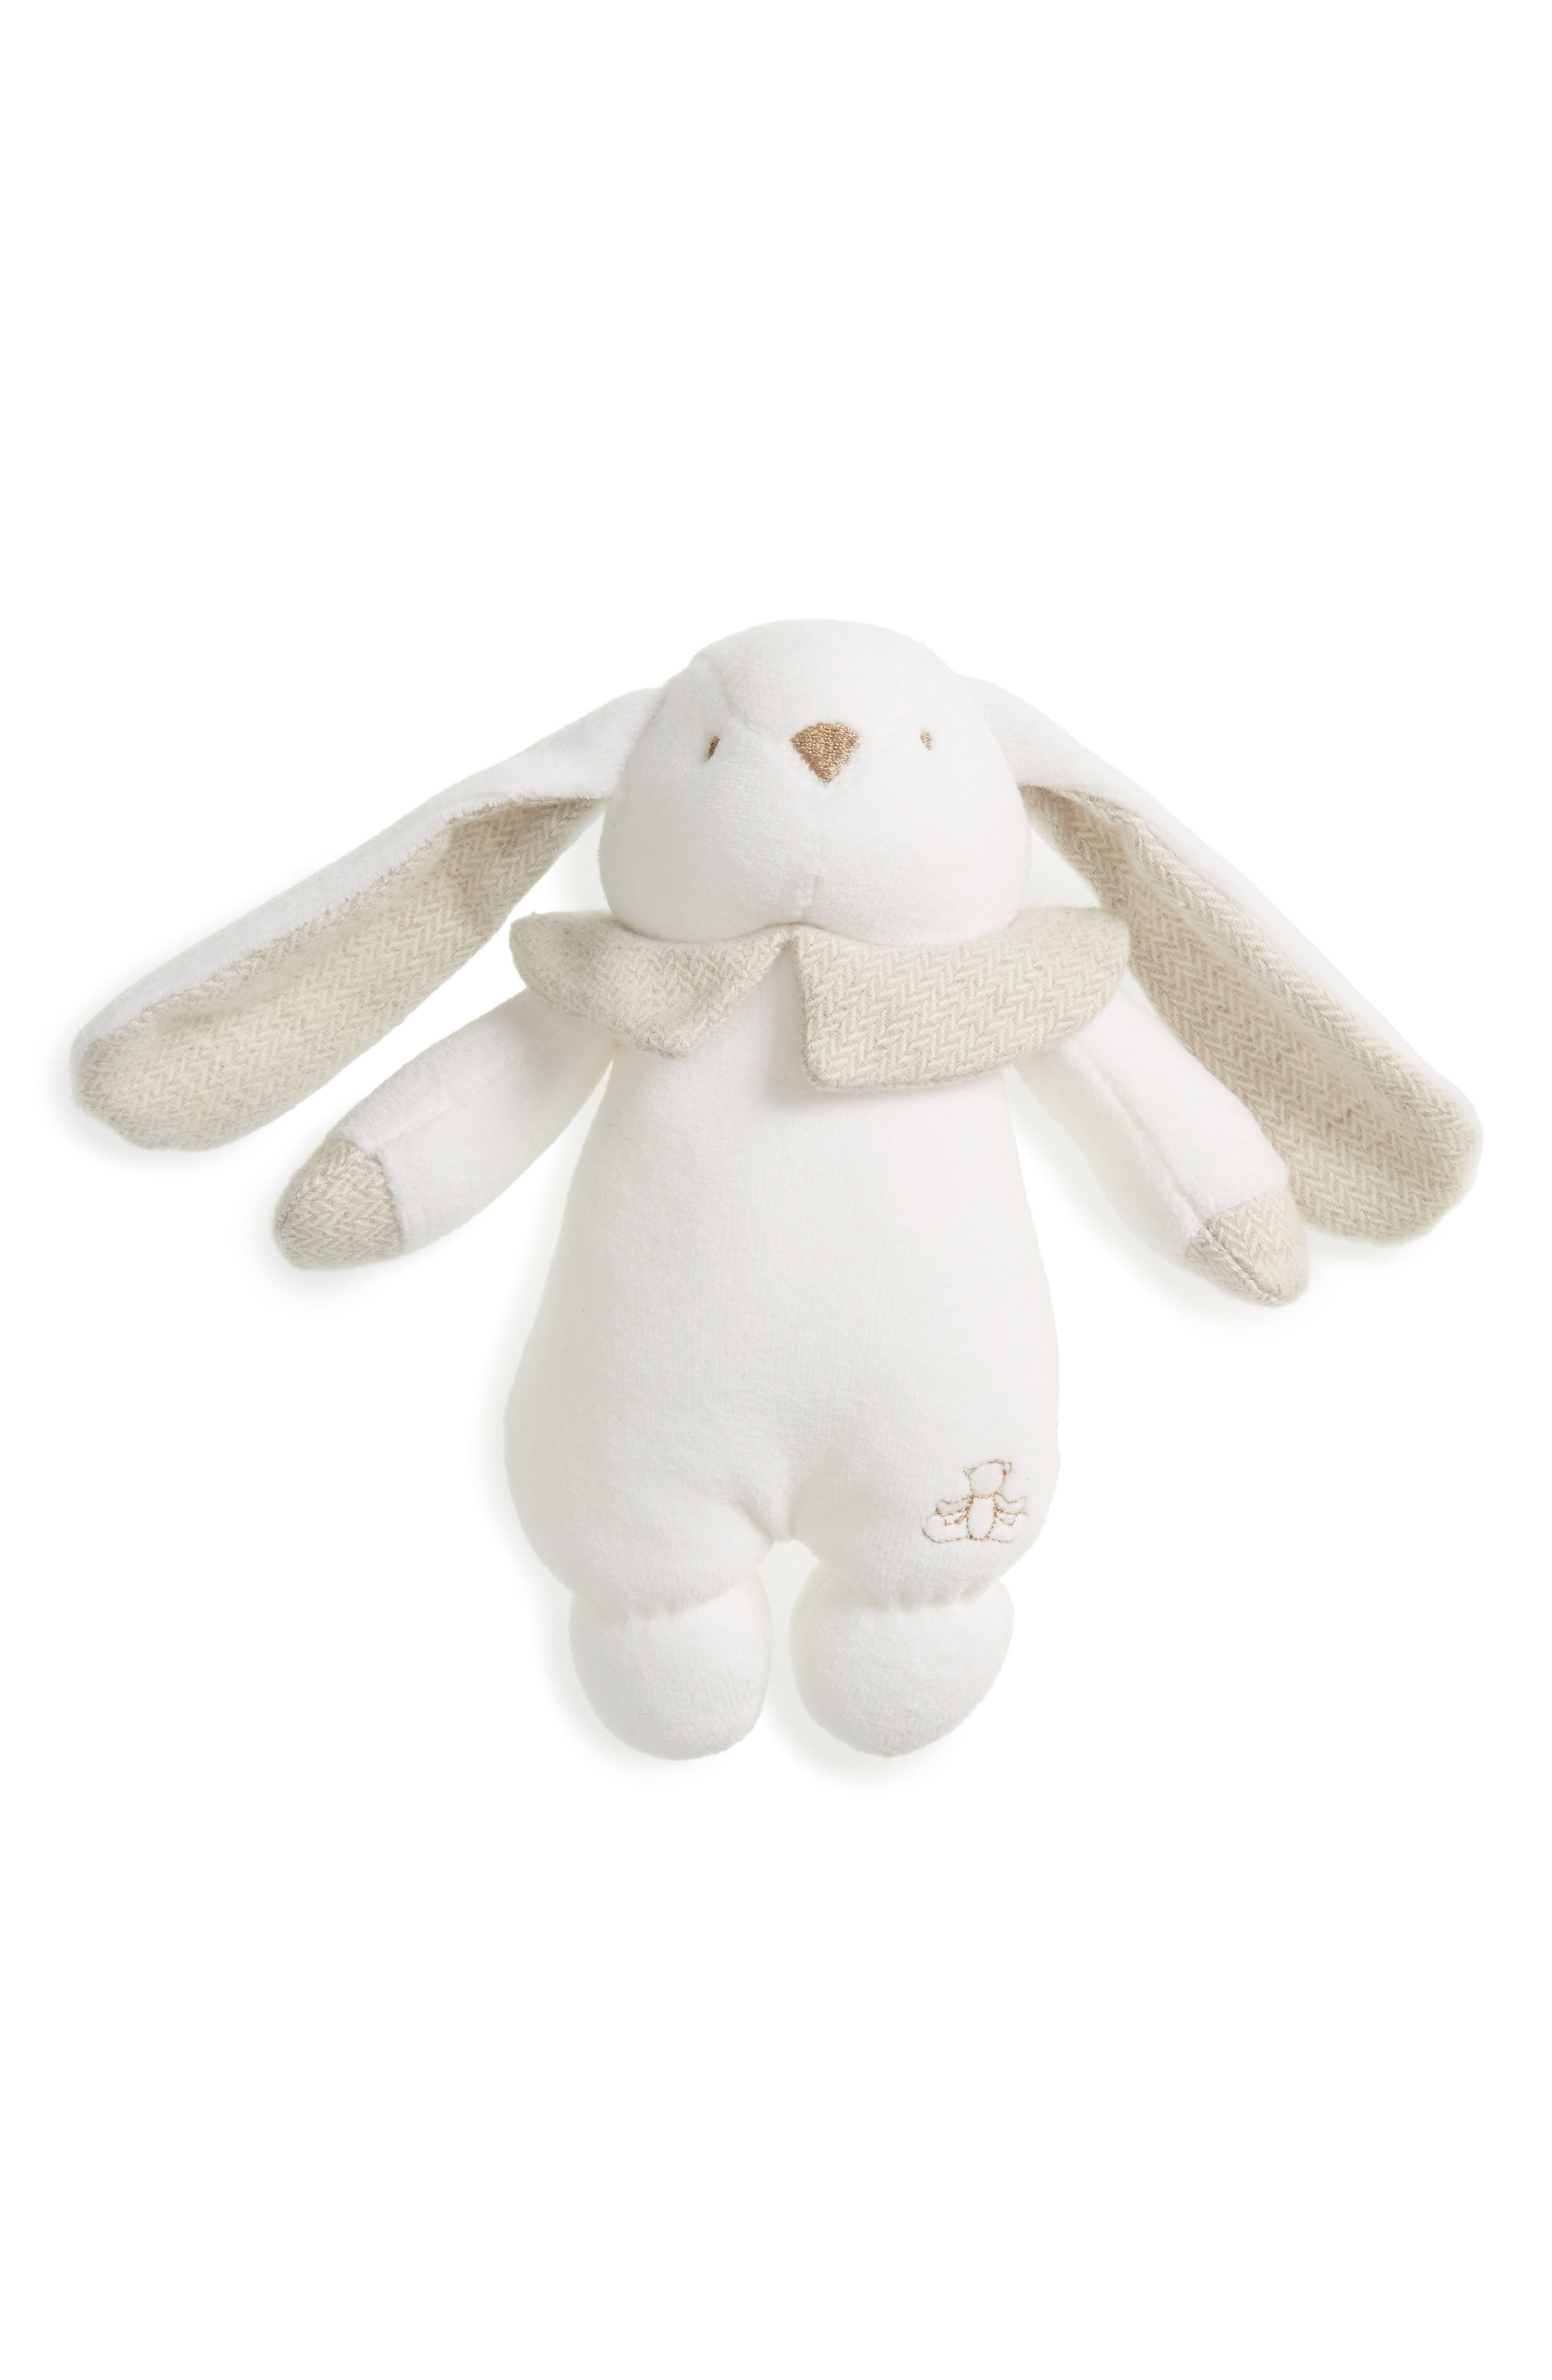 Pamplemousse Peluches Rabbit Lovey Rattle Toy